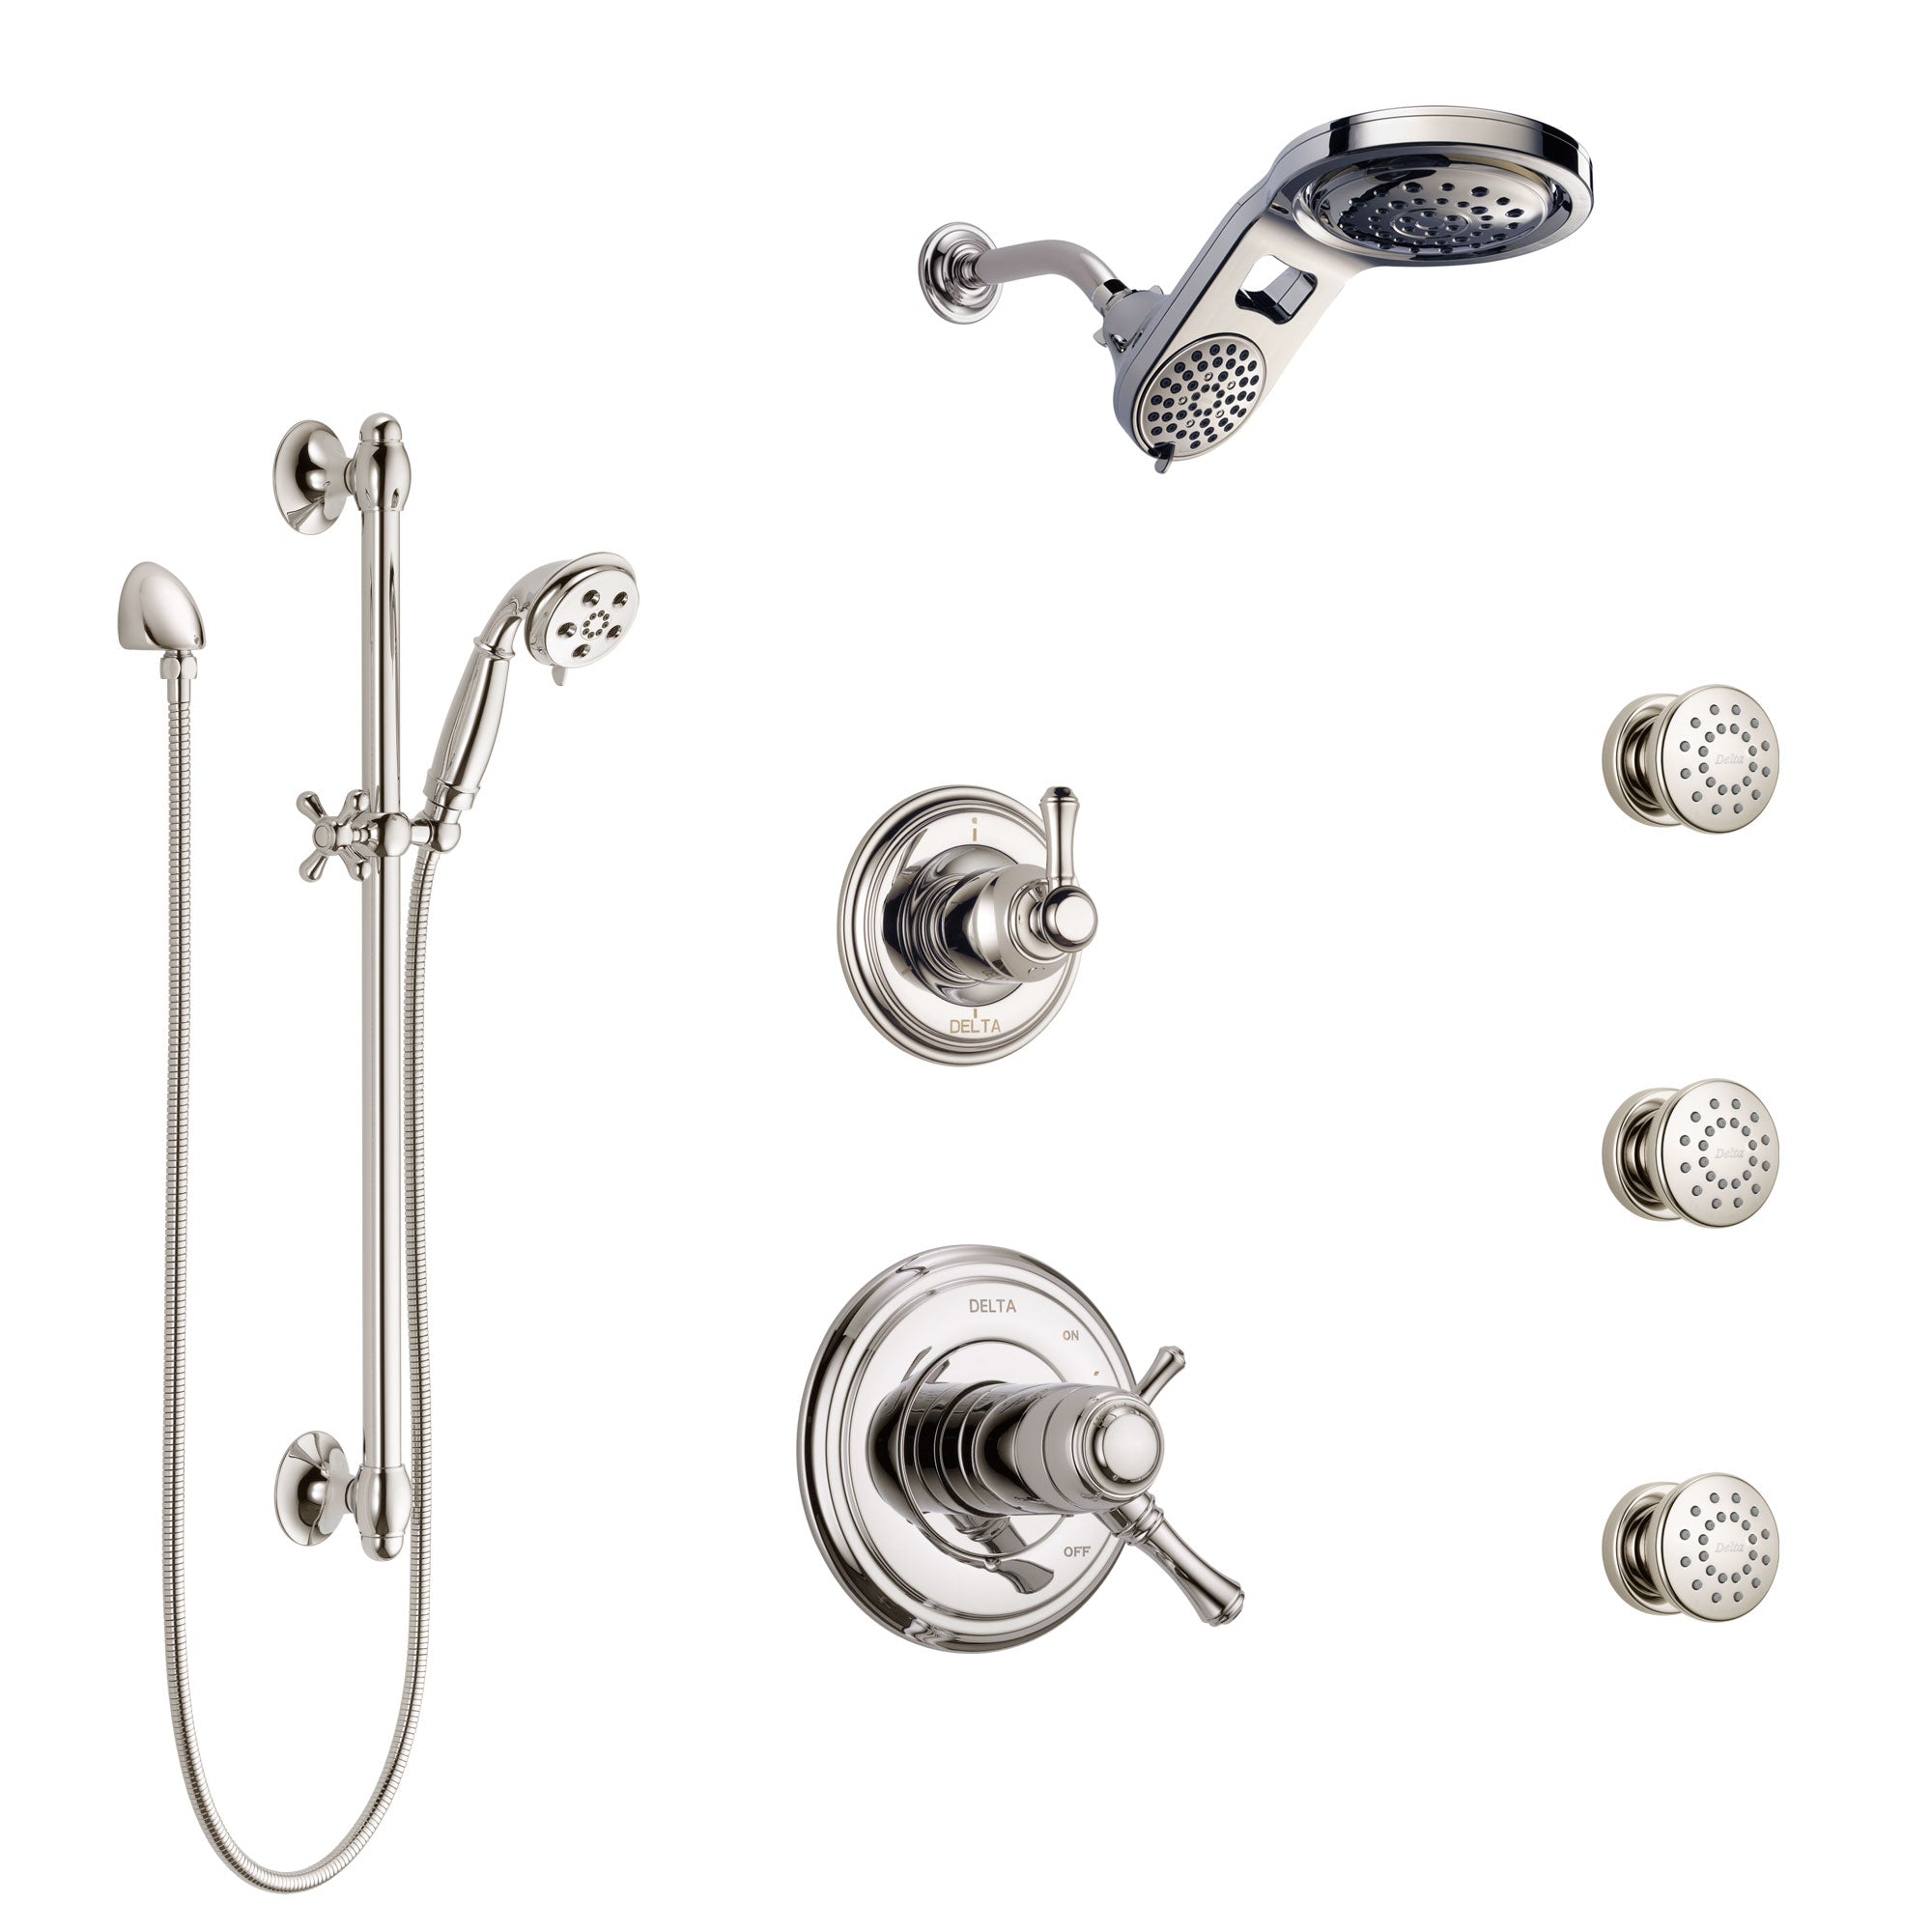 Delta Cassidy Polished Nickel Shower System with Dual Thermostatic Control, Diverter, Dual Showerhead, 3 Body Sprays, and Hand Shower SS17T971PN3